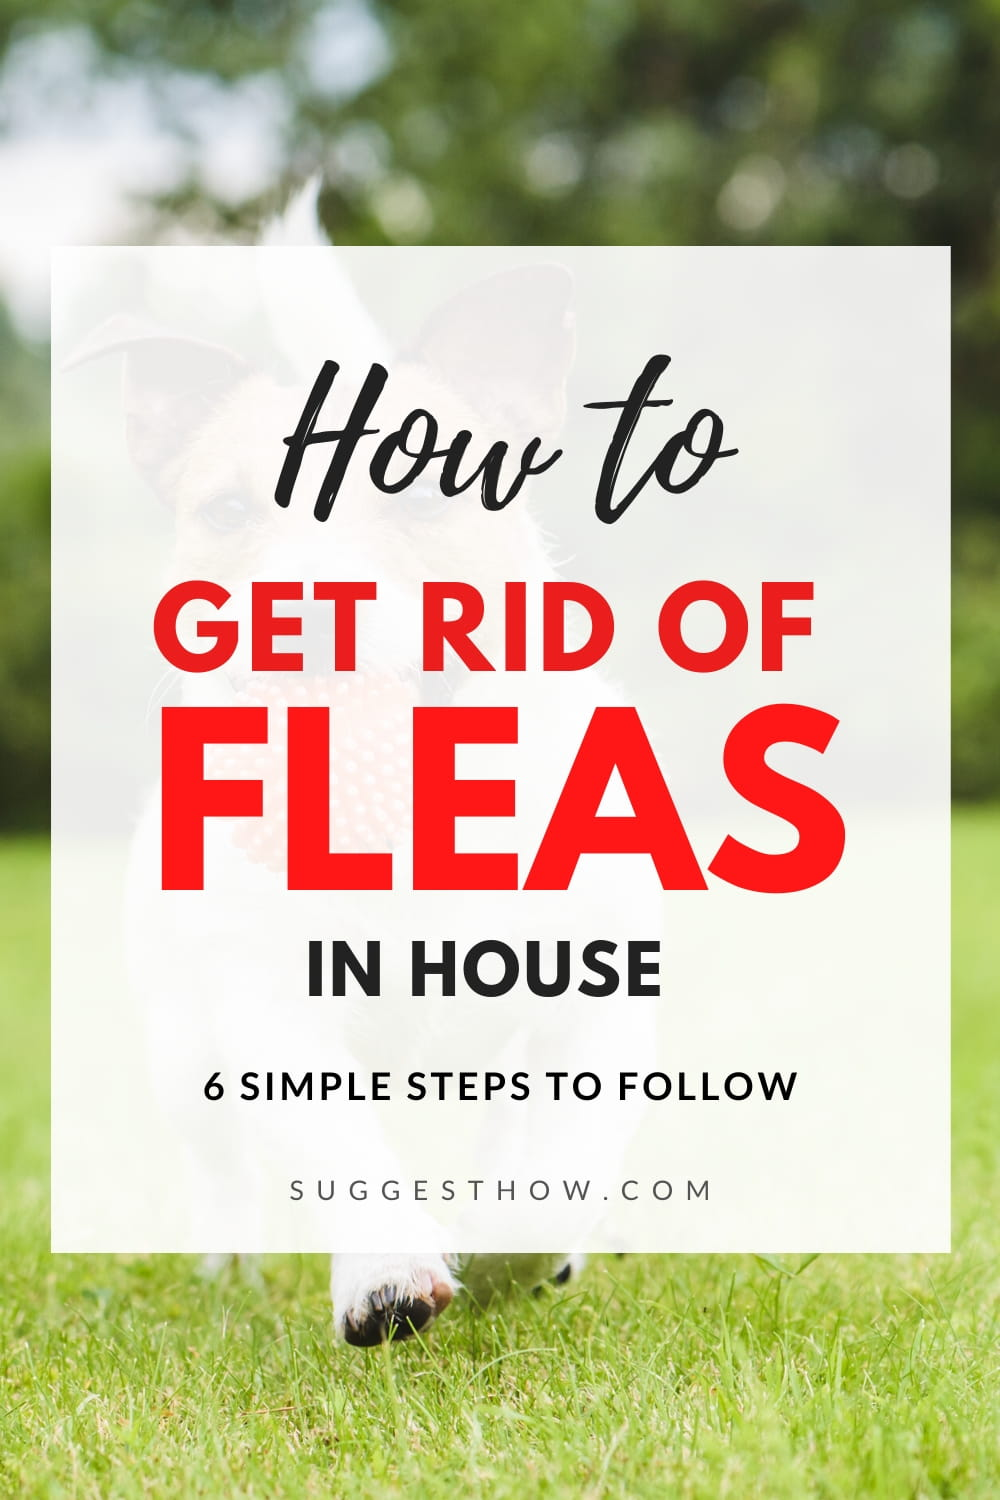 How to Get Rid of Fleas in House 6 Step by Step Guide in